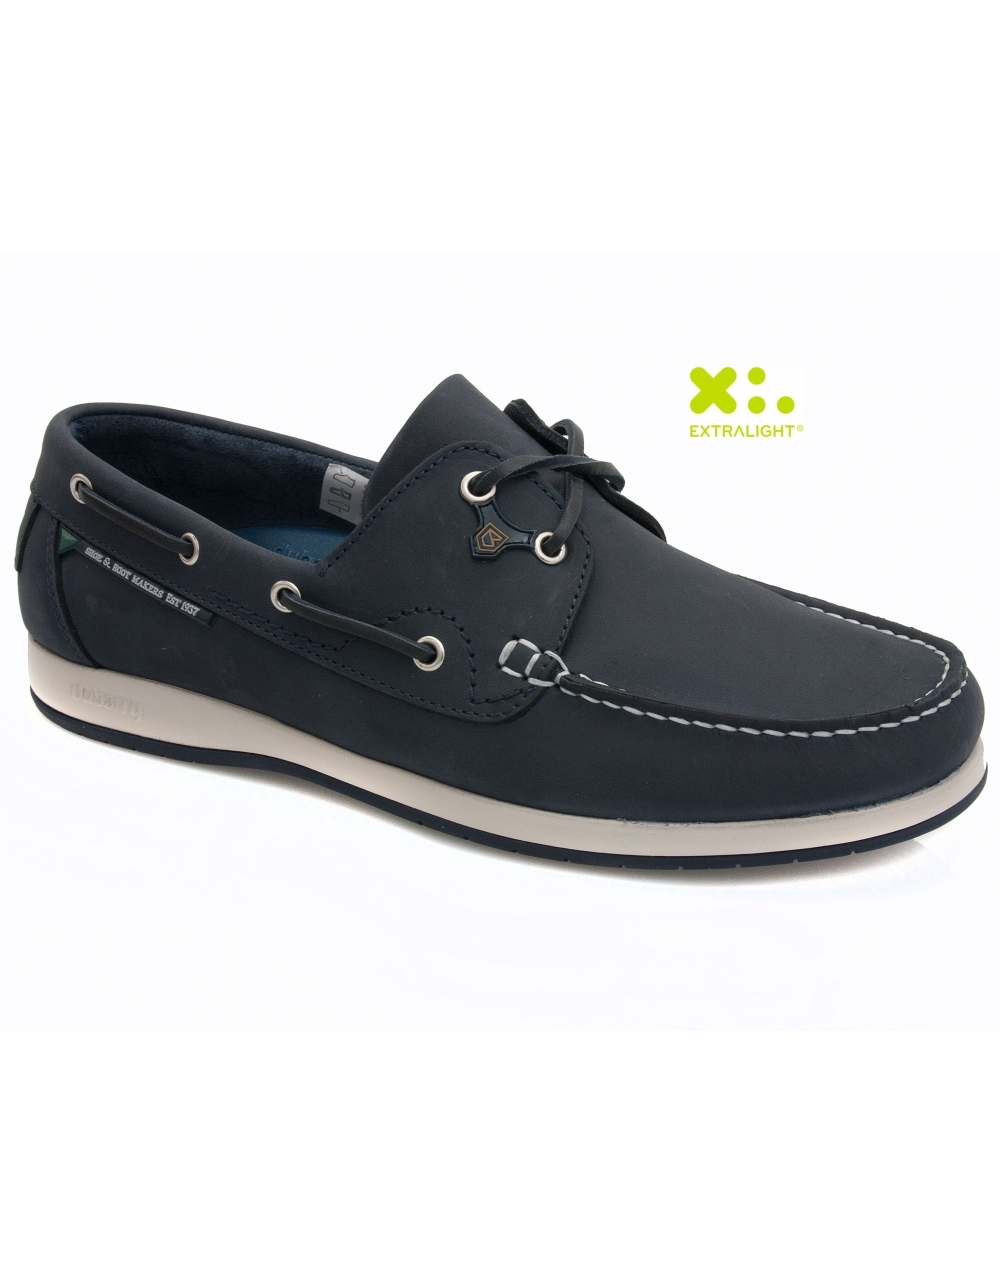 Deck shoes come in a wide range of colors including olive, sand & more. Shop Now! Men's Classic Boat Shoes. Boat shoes represent the ideal summer look for men. Relax on the boat, the beach, or just hanging out with friends in pure comfort and style. Navy Nubuck. 5 0 0 0 $ Un Abode Free. Mens Shoes. Navy Nubuck. 5 0 3 $